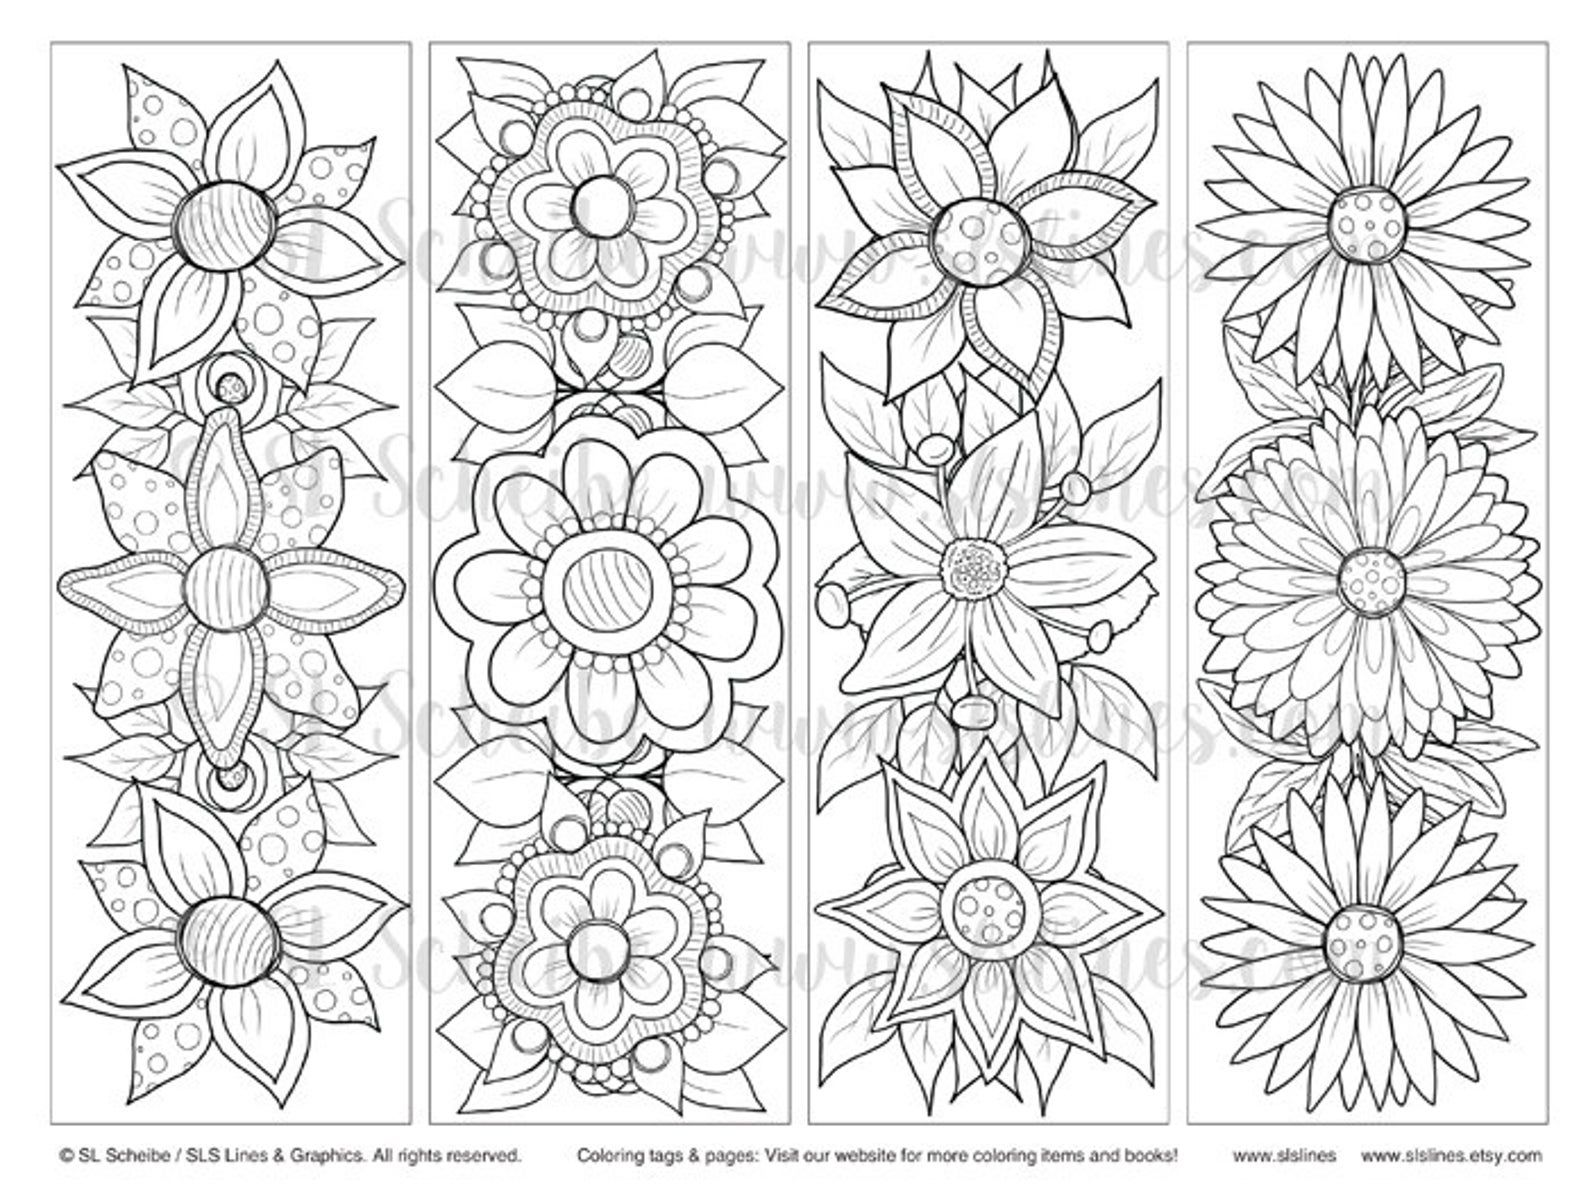 Printable Pdf Bookmark Coloring With Retro Pop Flower Design Etsy In 2020 Coloring Bookmarks Retro Pop Flower Coloring Pages